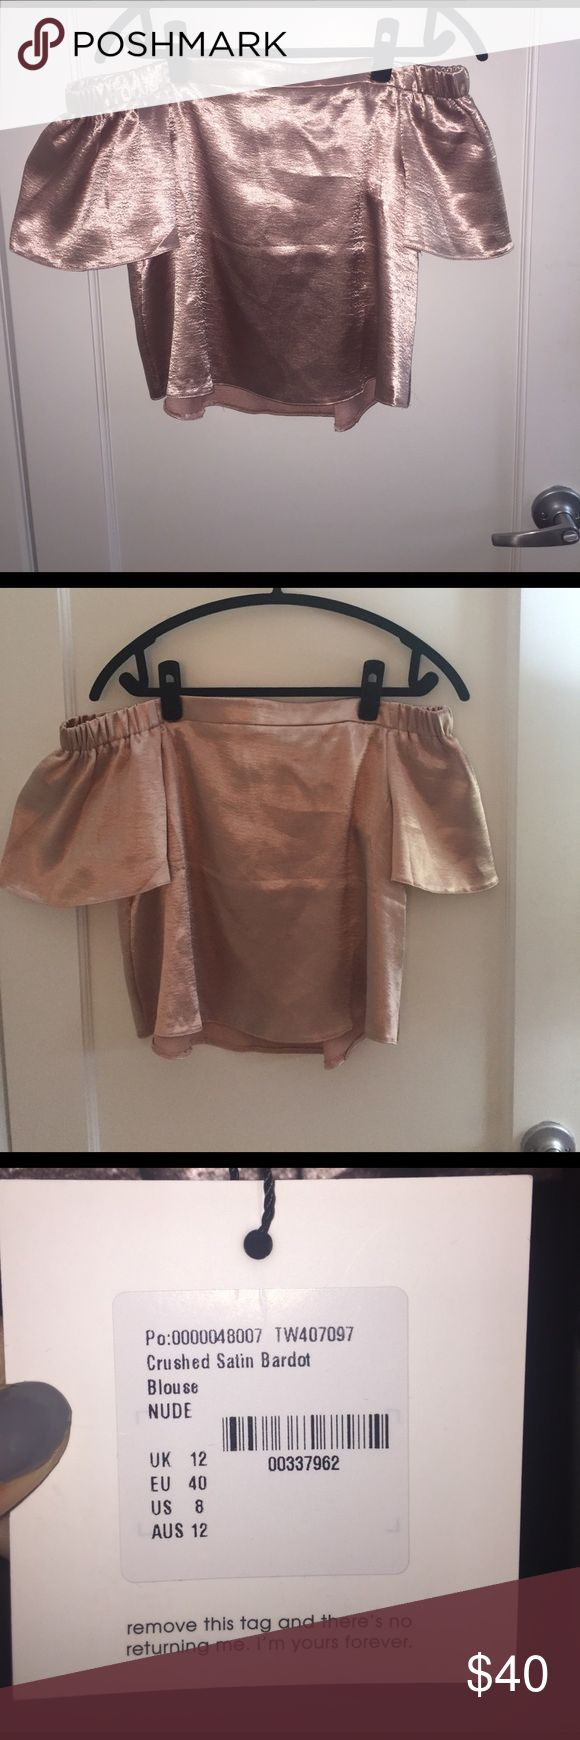 NWT! Bardot crushed satin Off-the-shoulder top 🌟 NWT!! 🌟🌟 crushed satin Bardot off the shoulder shirt in blush/nude. Stunning!! All offers are considered and I offer a bundle discount if you purchase more than one item 😘 Missguided Tops